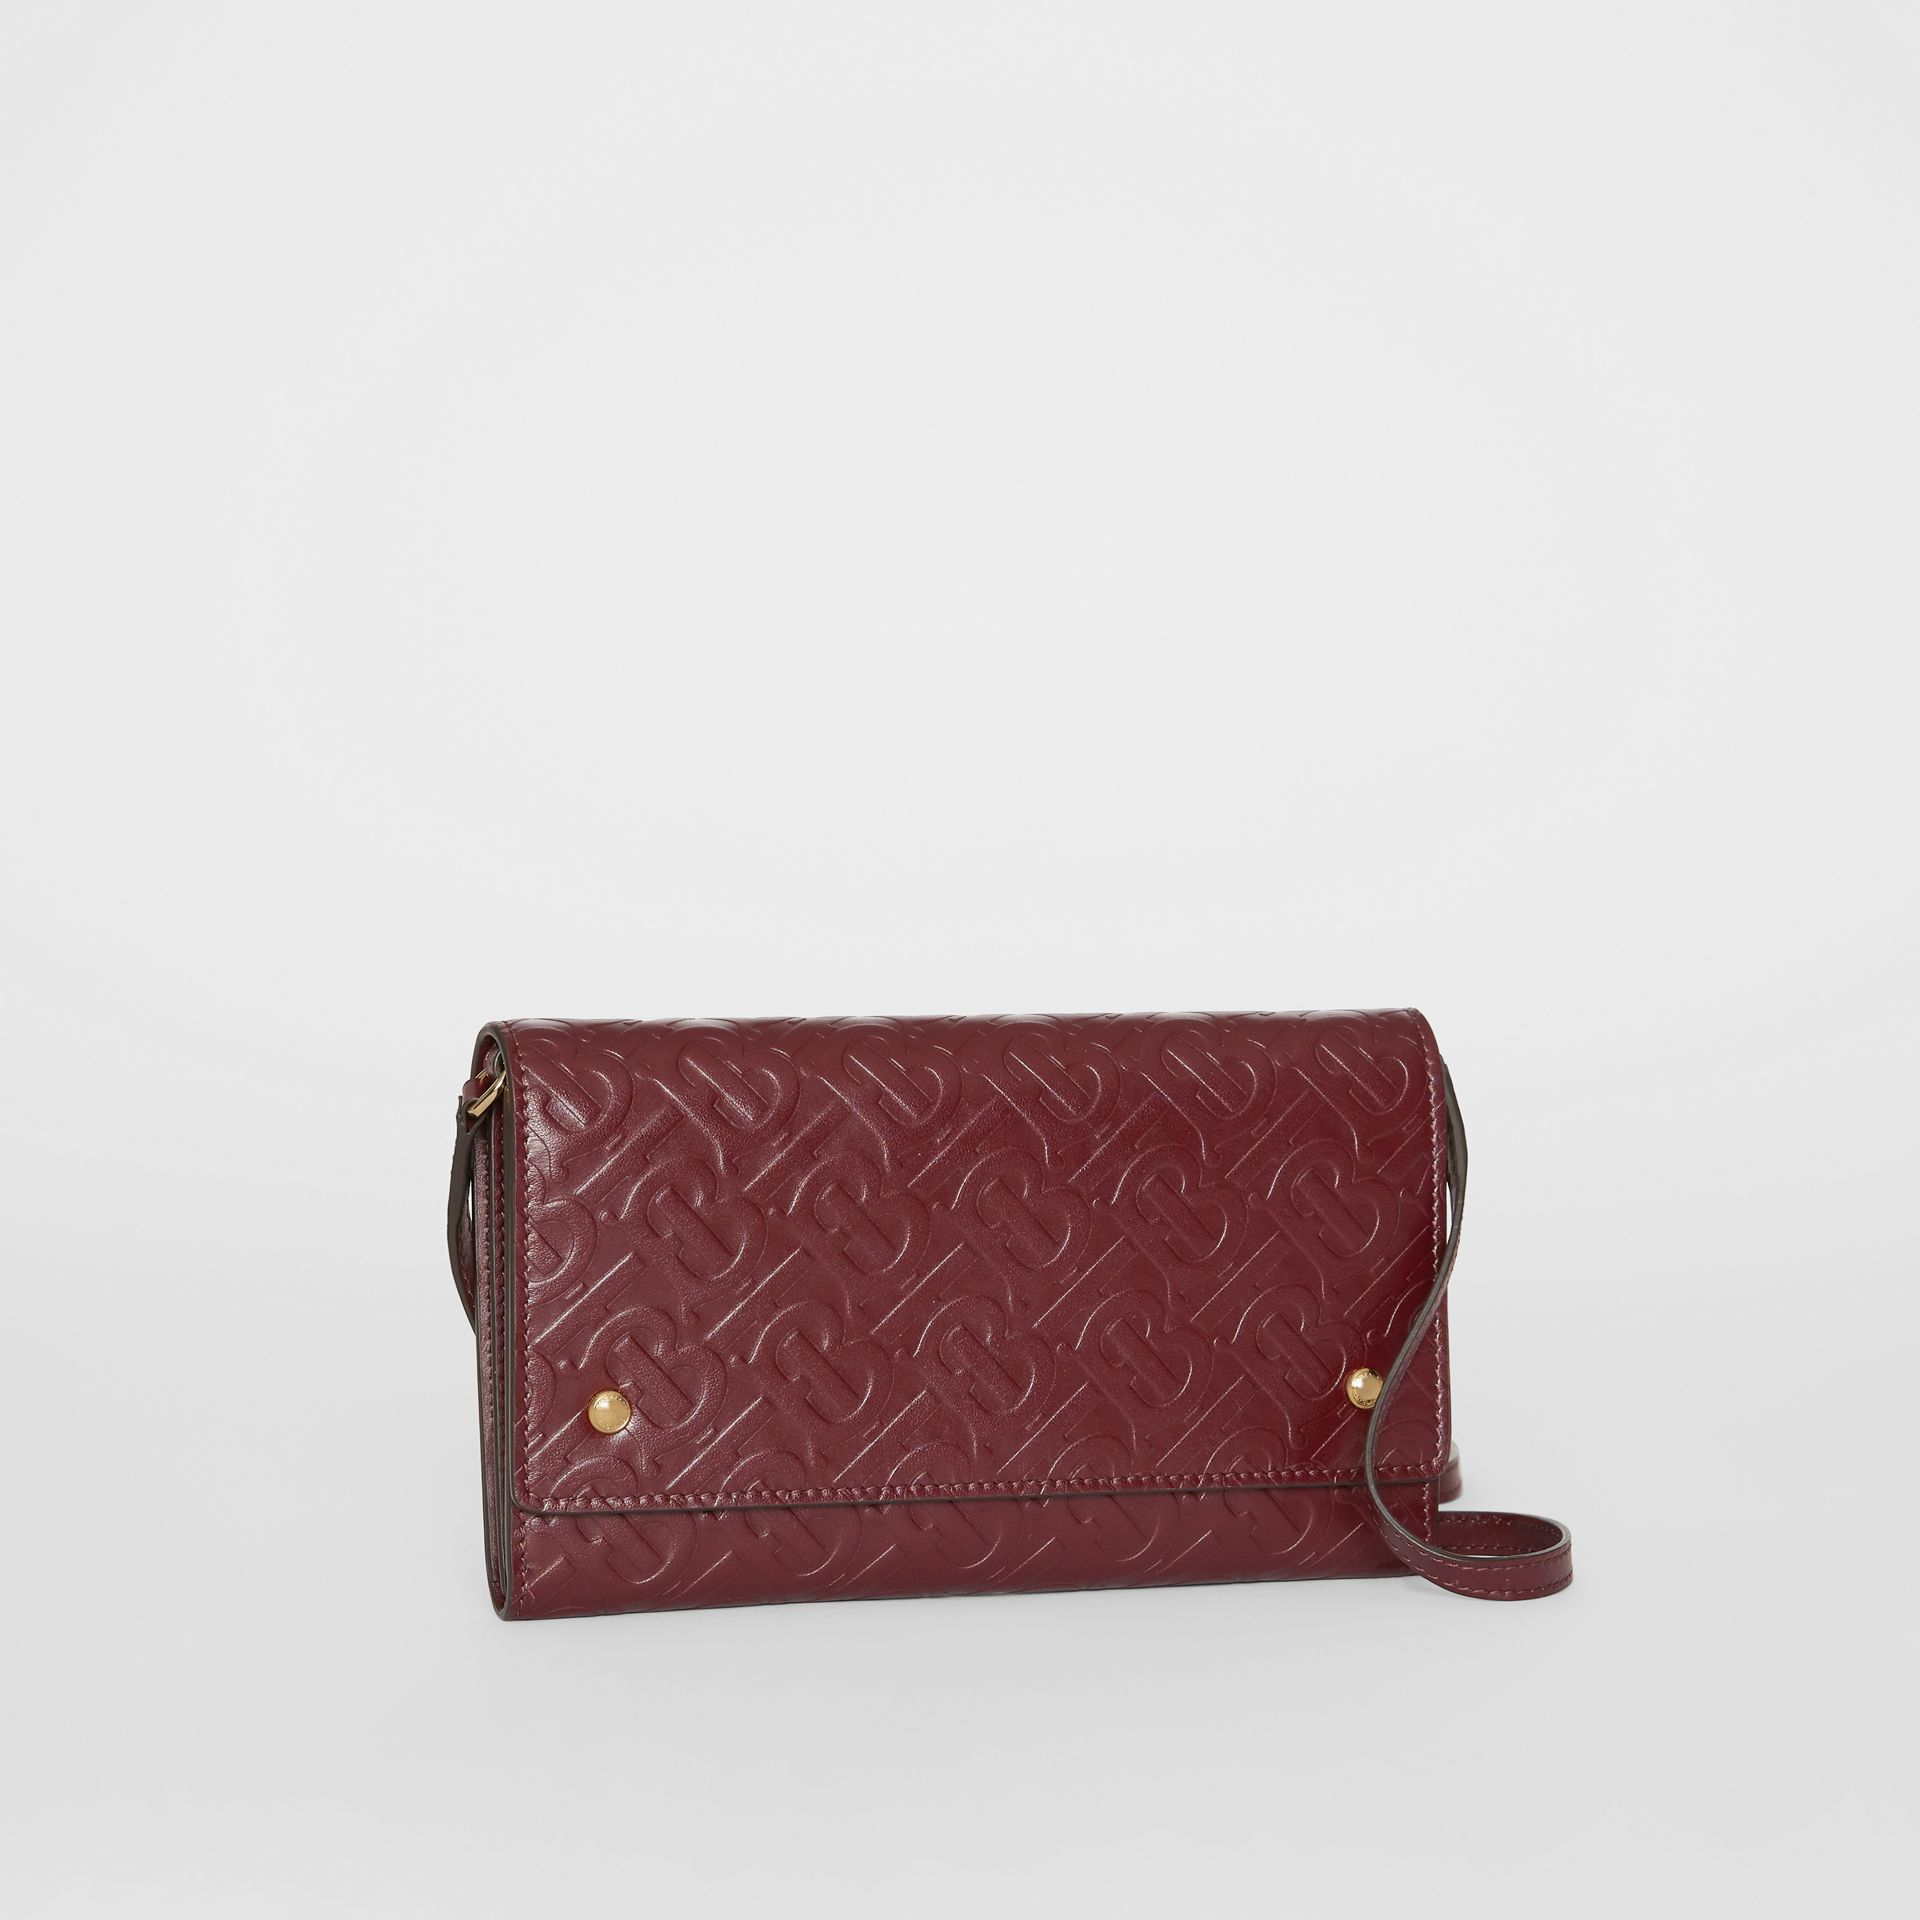 Portefeuille en cuir Monogram avec sangle amovible (Oxblood) - Femme | Burberry - photo de la galerie 6